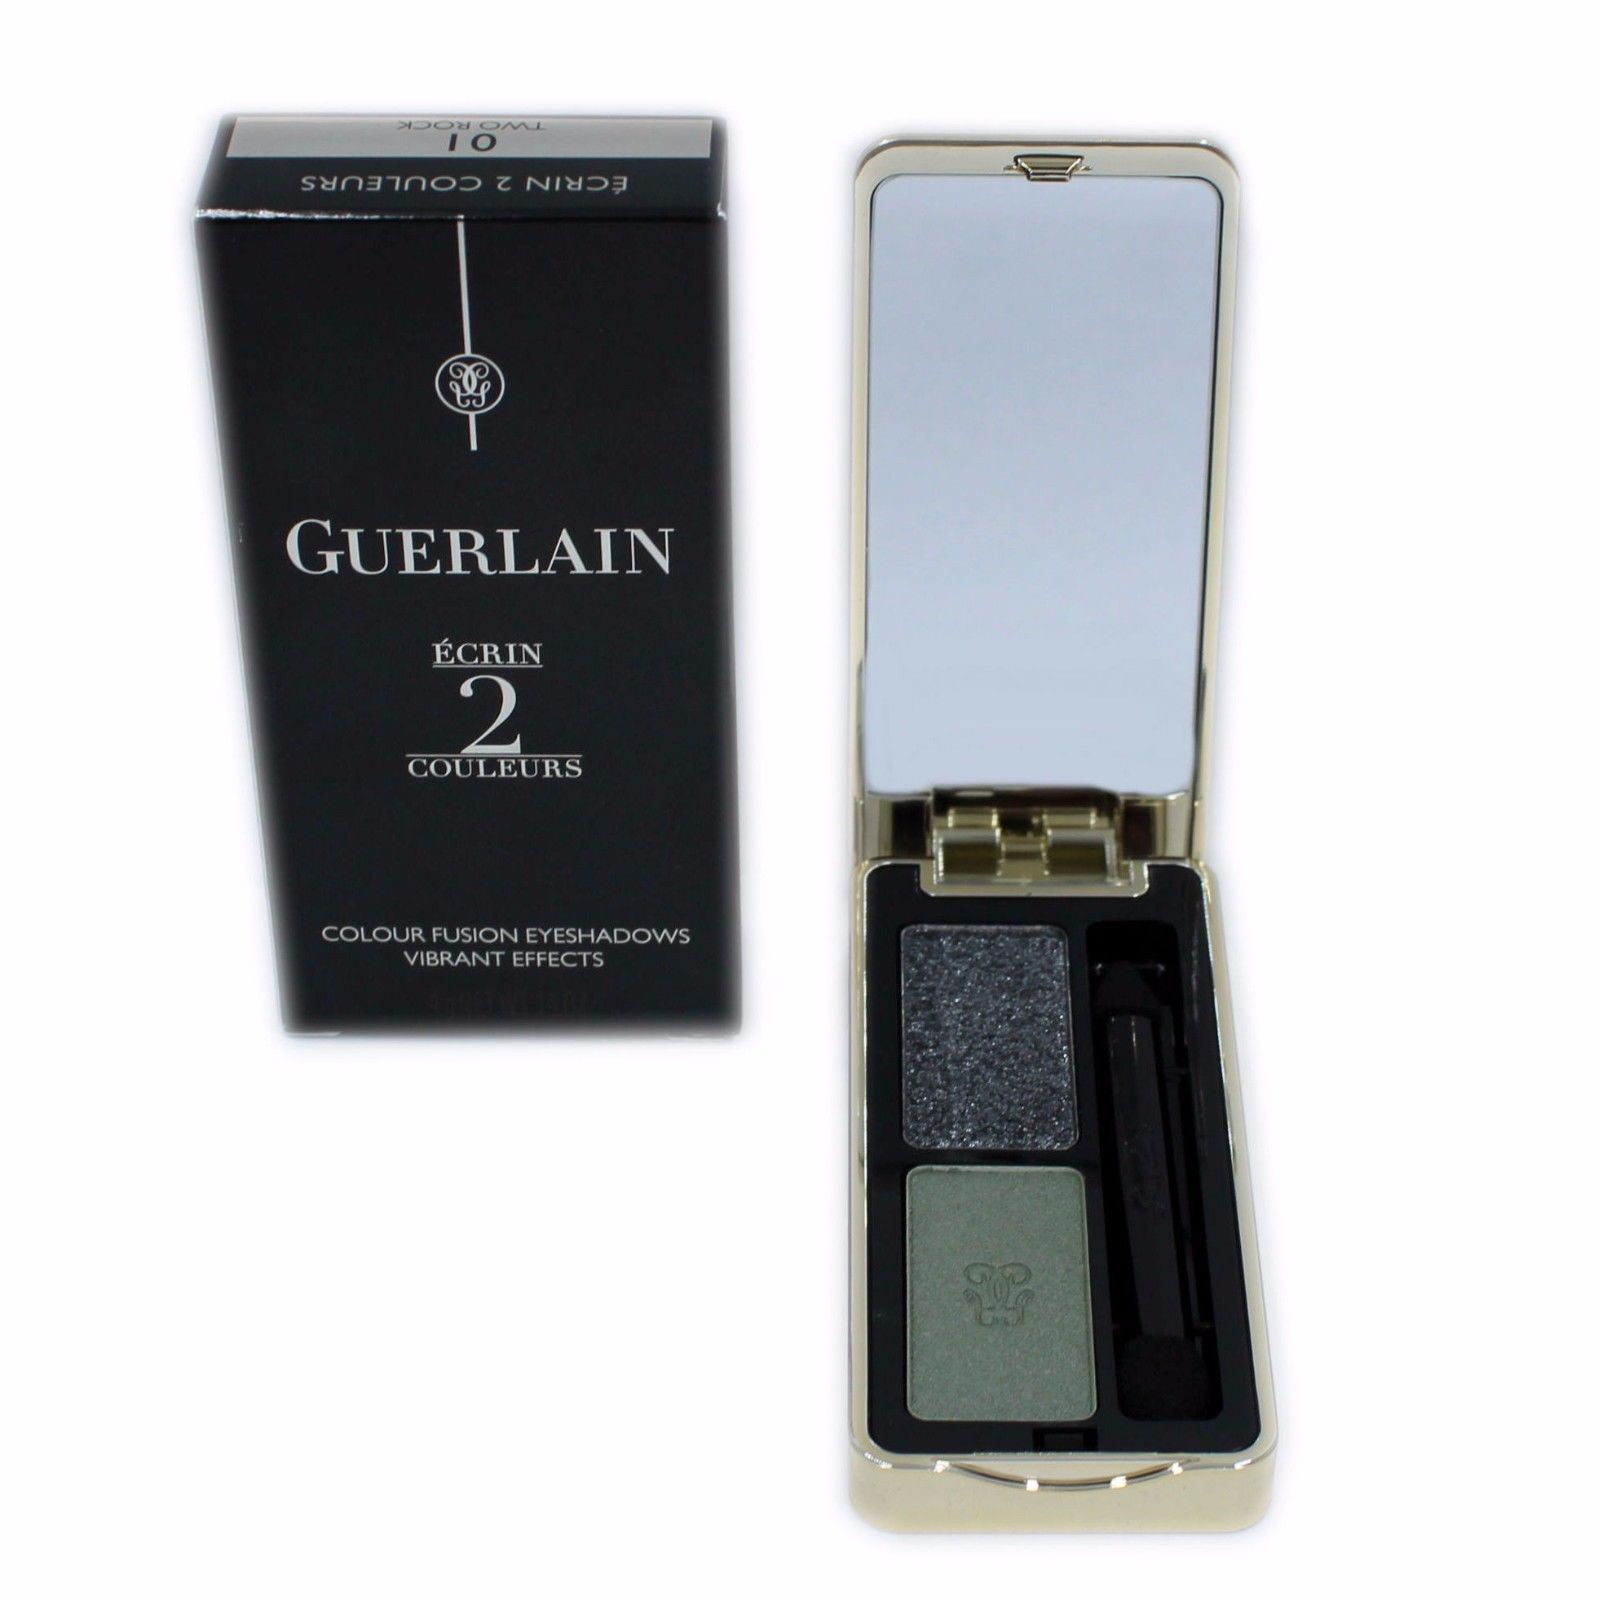 Primary image for GUERLAIN ECRIN 2 COULEURS COLOUR FUSION EYESHADOWS EFFETS VIBRANTS 4G #01-G41387